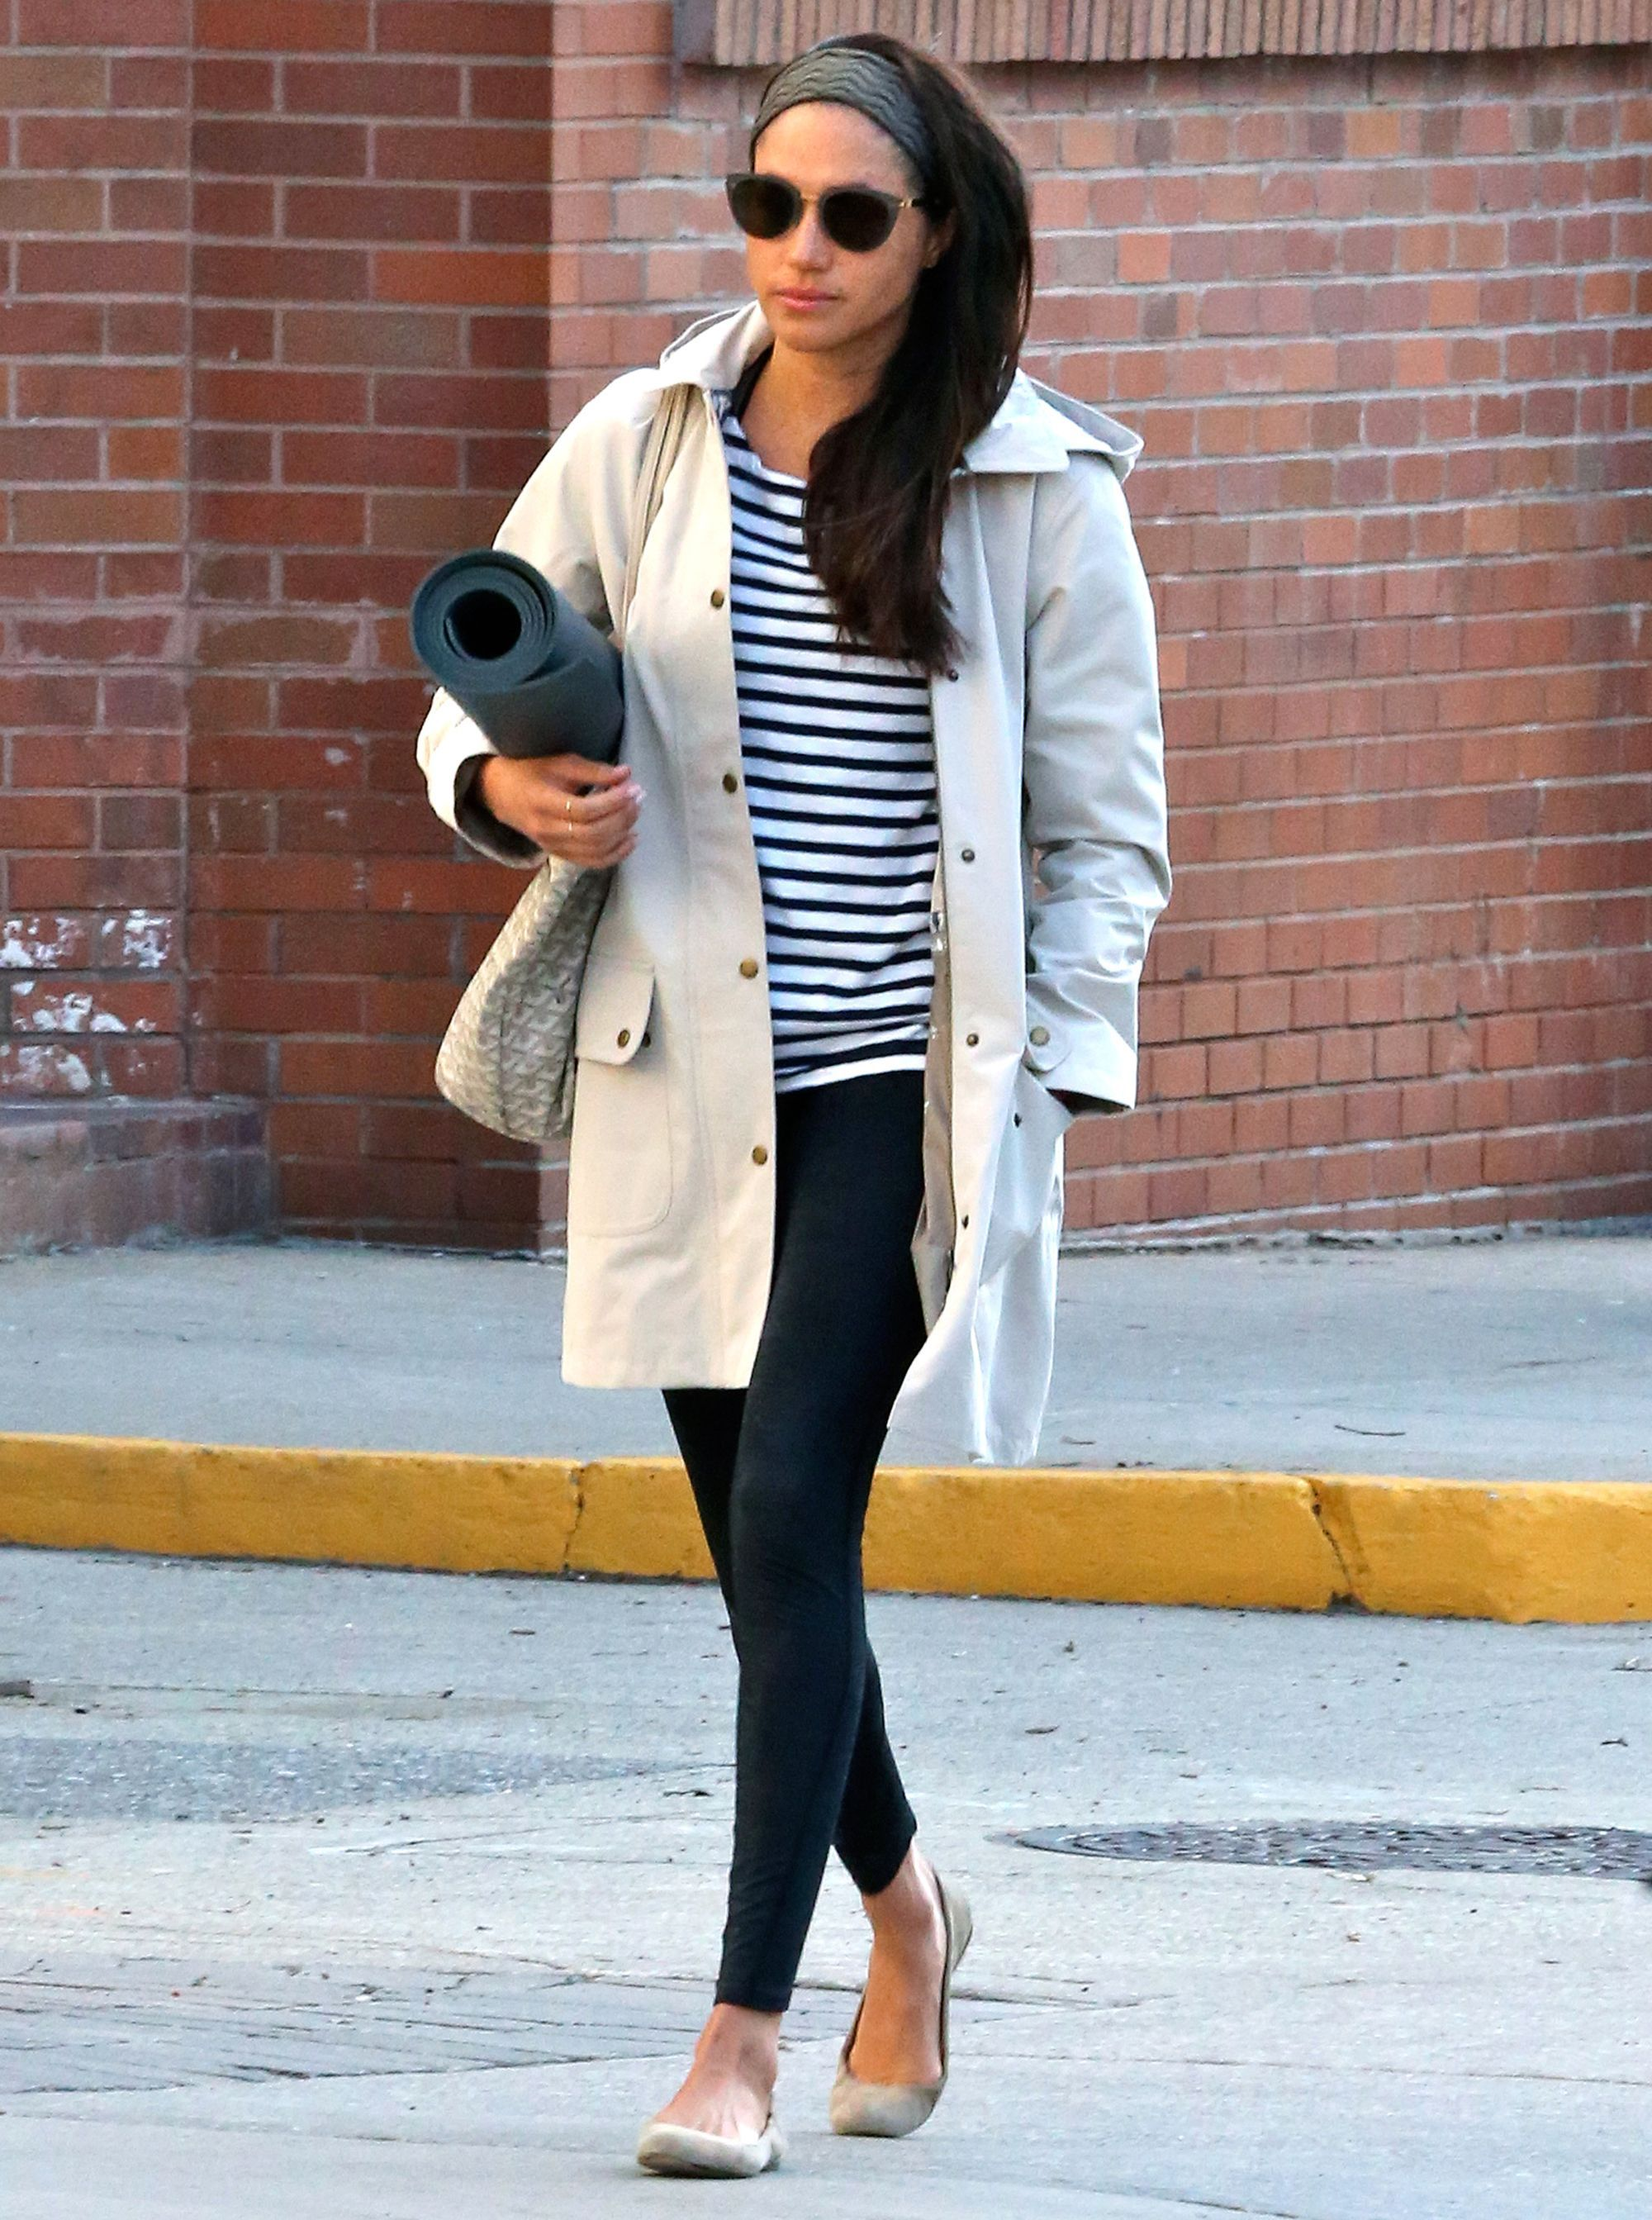 ae3d3a798 Meghan Markle Wore One of Kate Middleton's Favorite Fashion Items Heading  to Yoga from InStyle.com